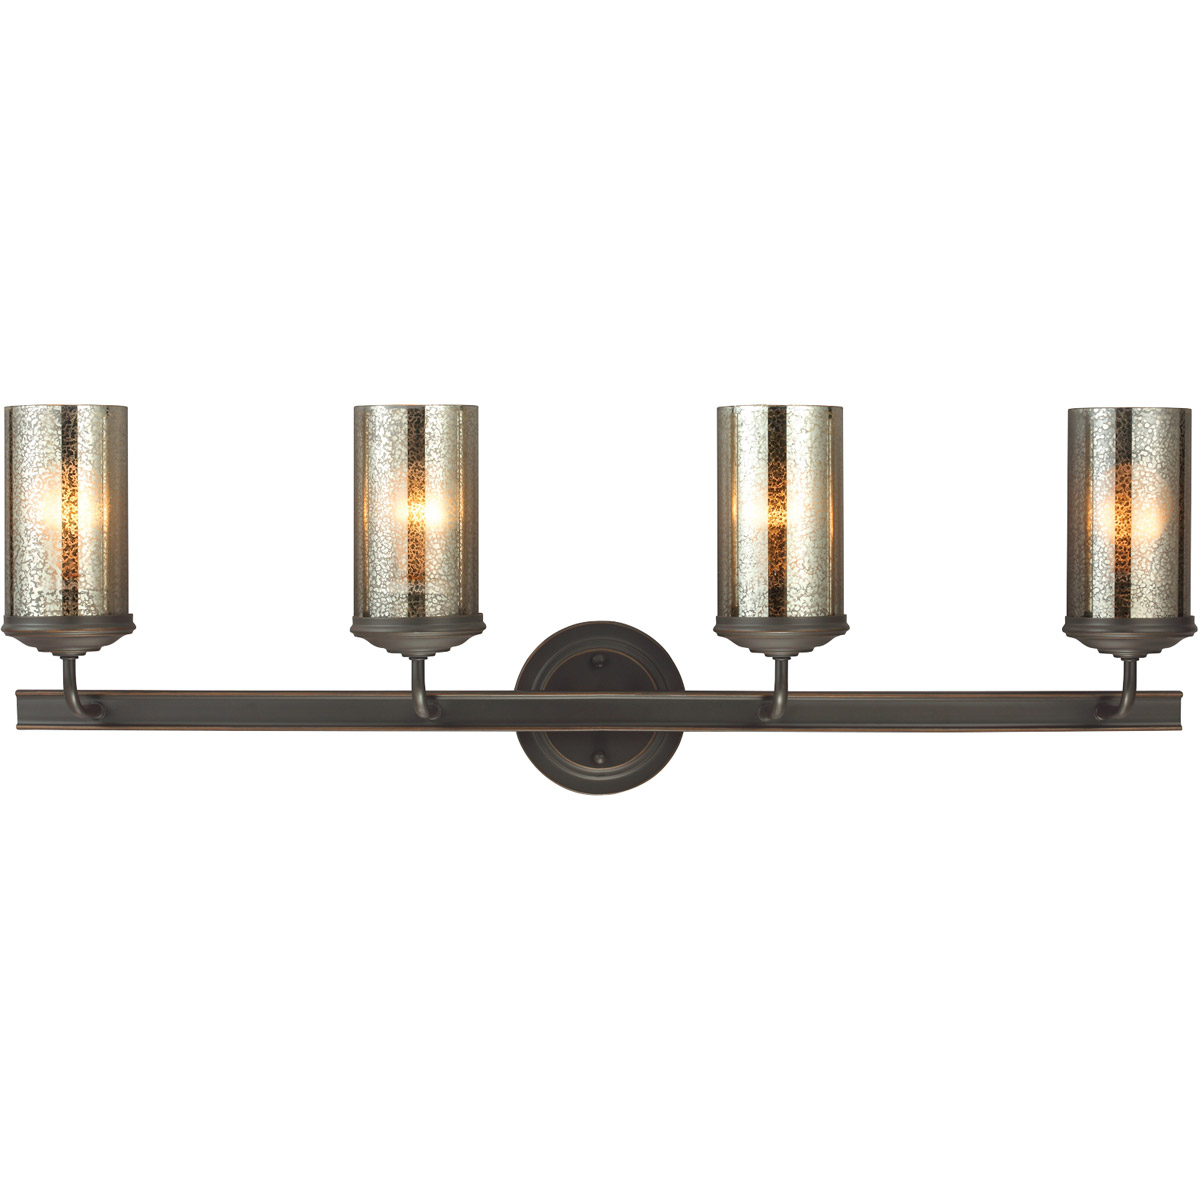 Sea Gull 4410404BLE-715 Sfera 4 Light 34 inch Autumn Bronze Bath Vanity Wall Light in Fluorescent photo